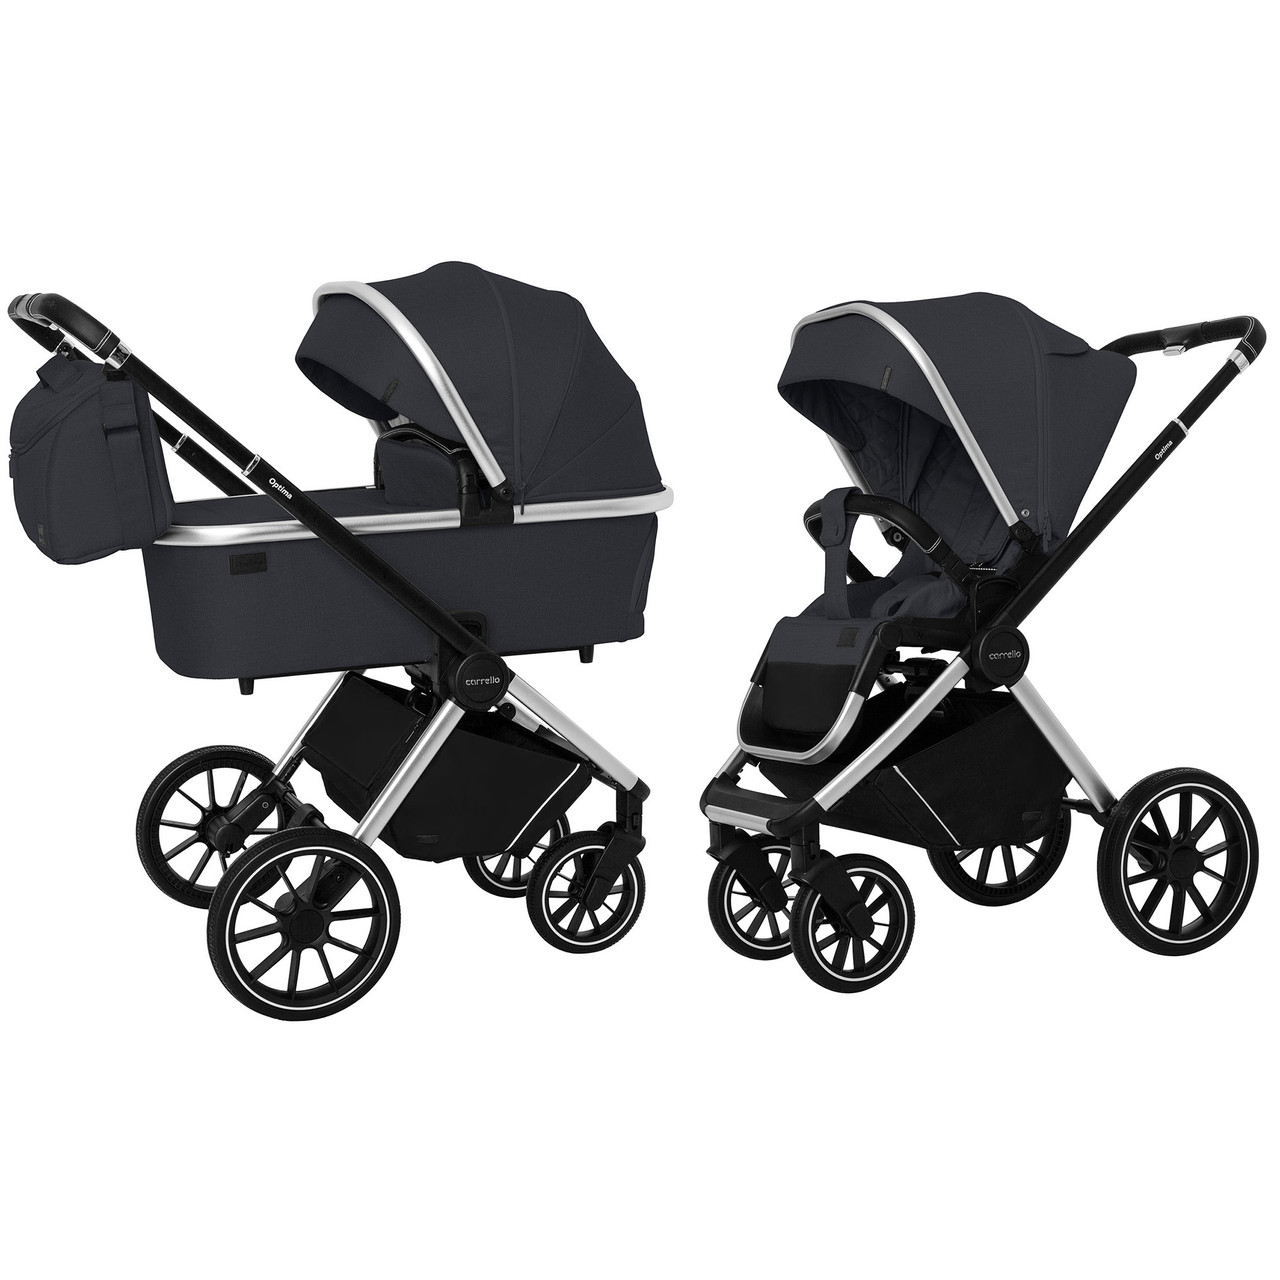 Коляска 2 в 1 Carrello Optima CRL-6503 (2in1) Platinum Grey